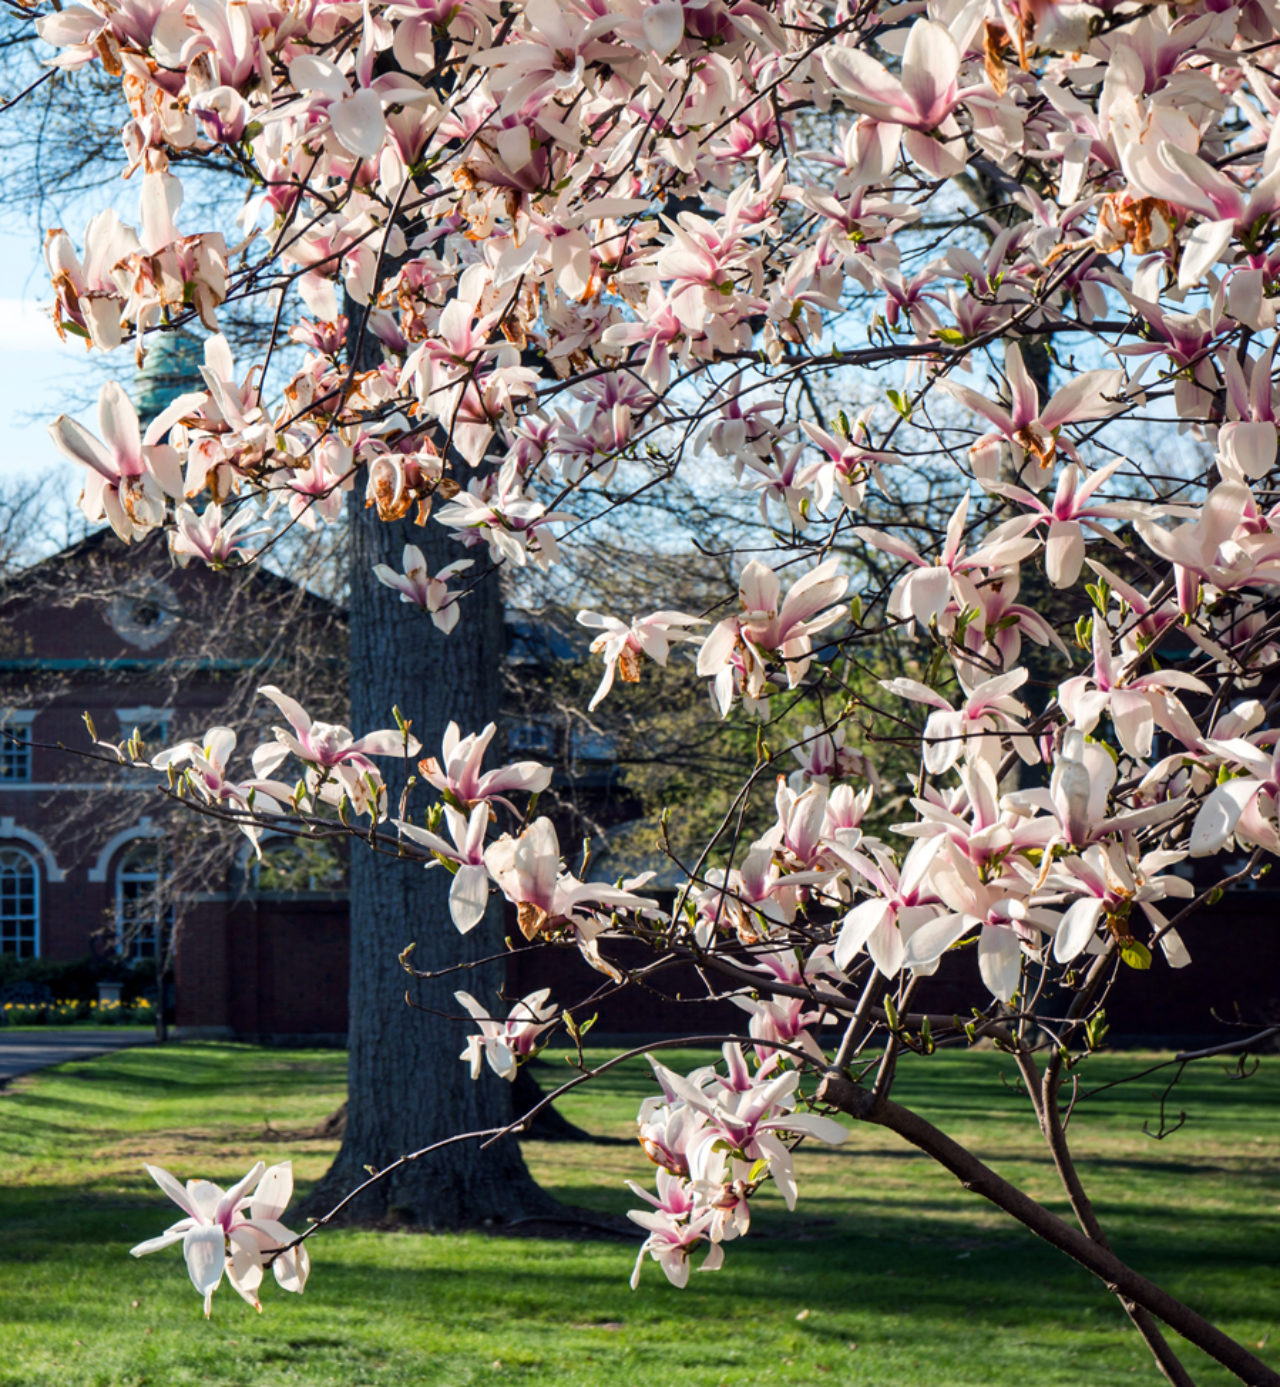 Magnolia blossoms bloom in the spring at FDU's Florham Campus. (Photo by Joshua Siniscal)